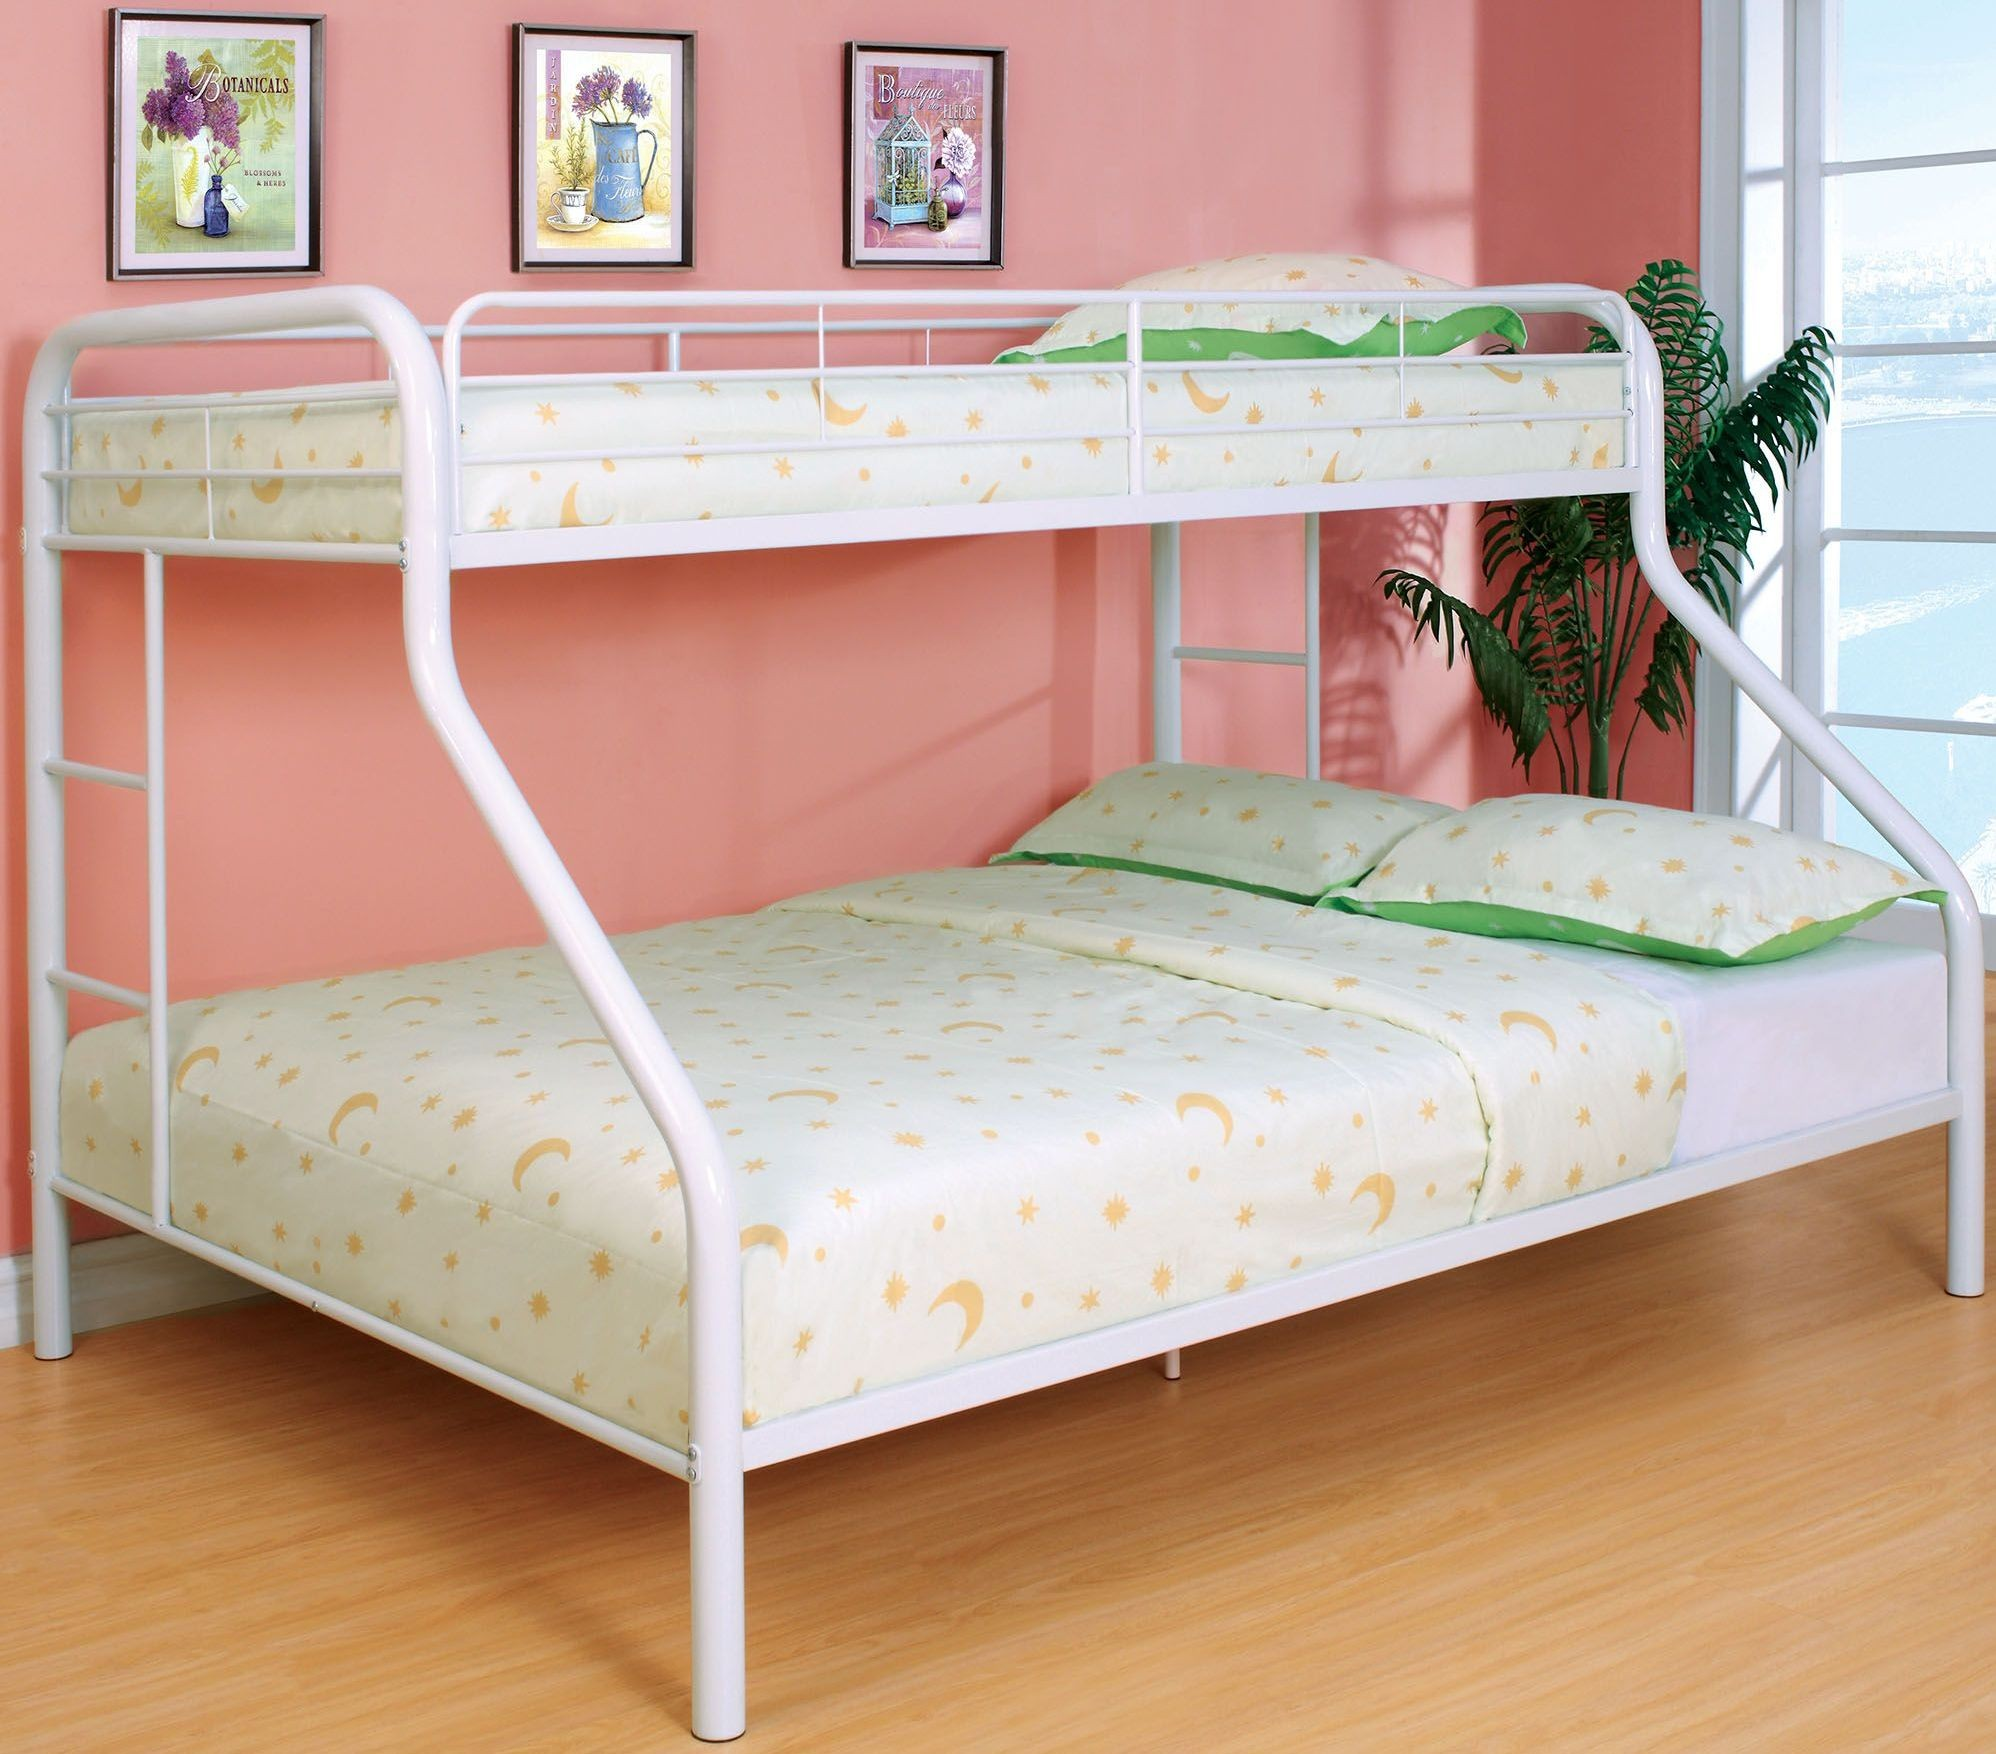 Rainbow white twin over queen bunk bed cm bk1133wh 2 twin beds make a queen